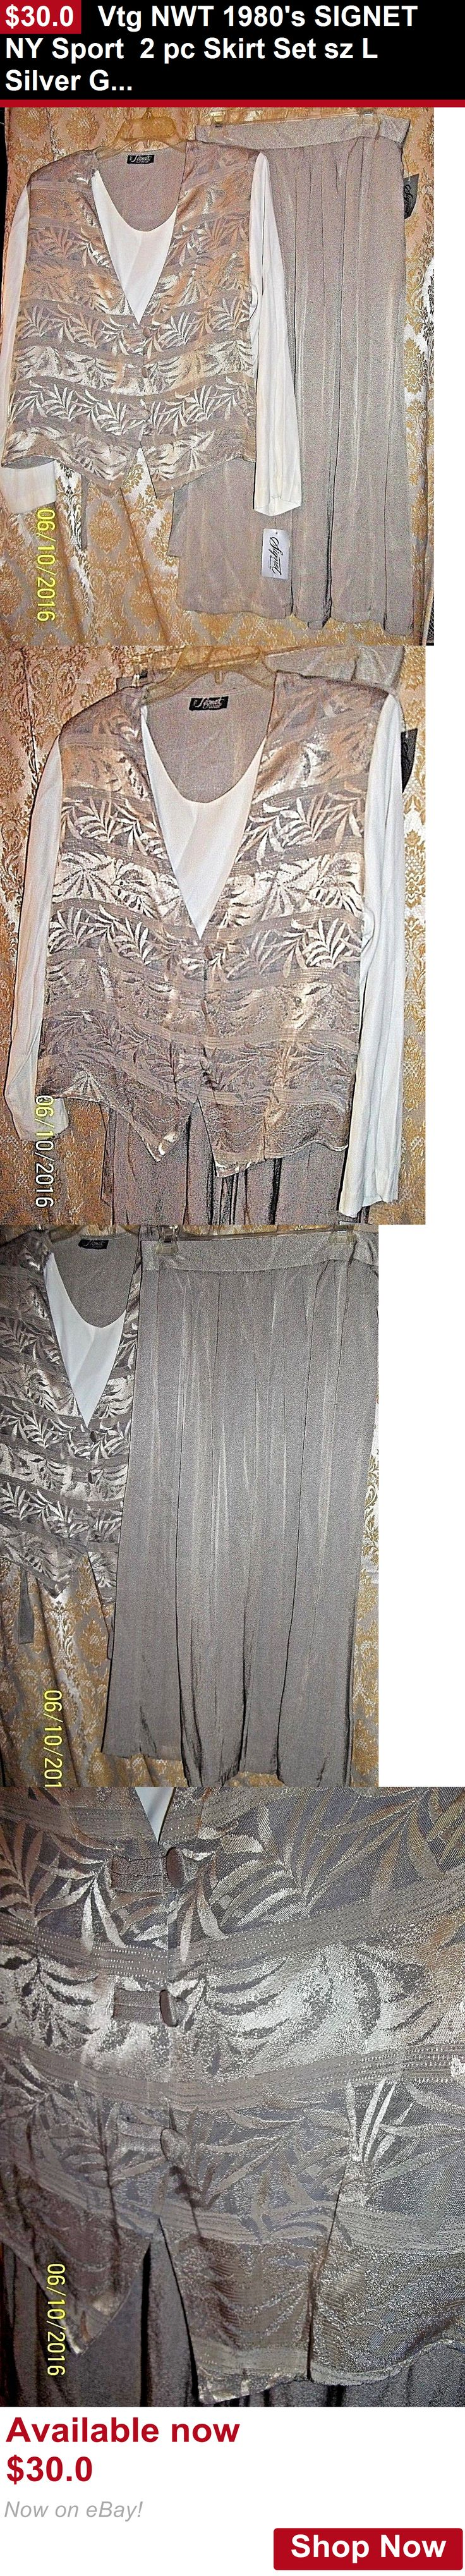 Women vintage reproductions: Vtg Nwt 1980S Signet Ny Sport 2 Pc Skirt Set Sz L Silver Gold Taupe Fern Print BUY IT NOW ONLY: $30.0